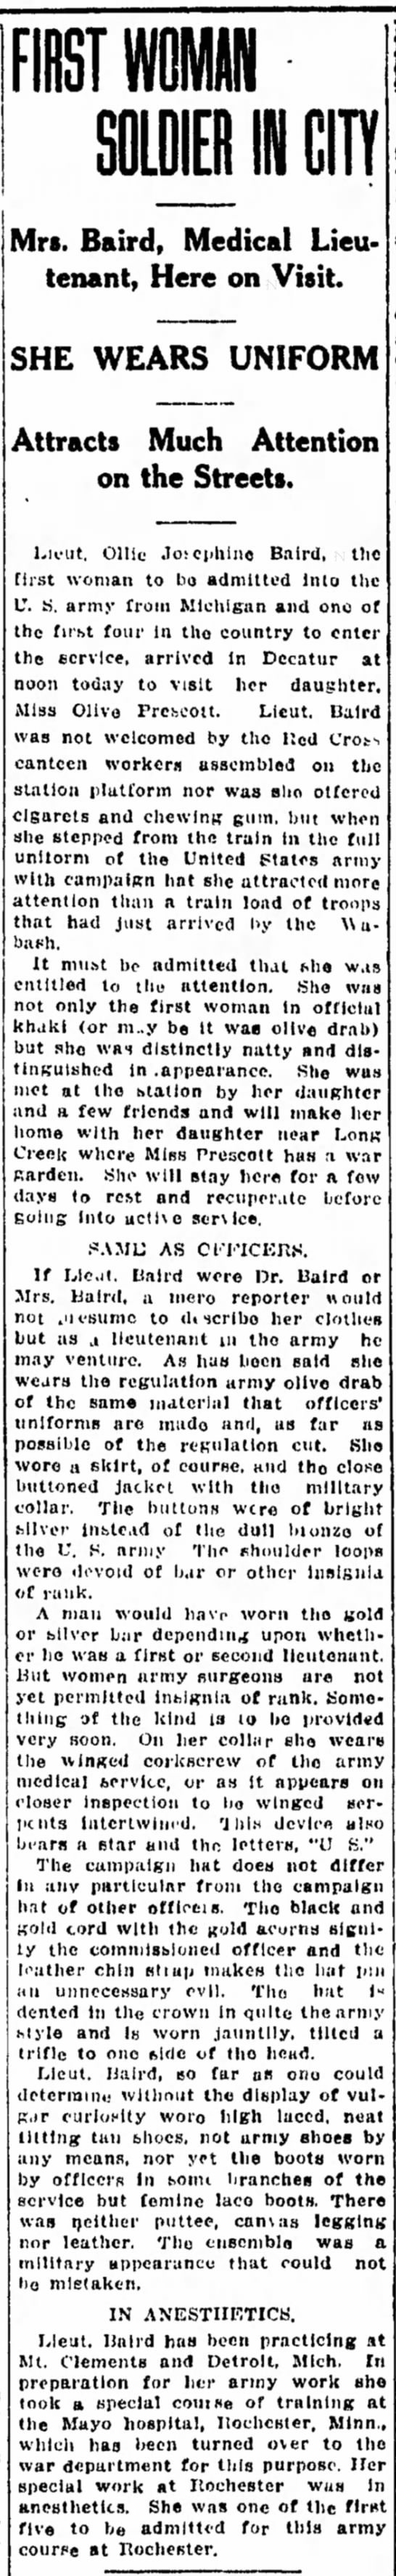 Lieutenant/Dr Ollie (Stackhouse) Baird visit and description - g for the men to be five train Louis m. N. on...